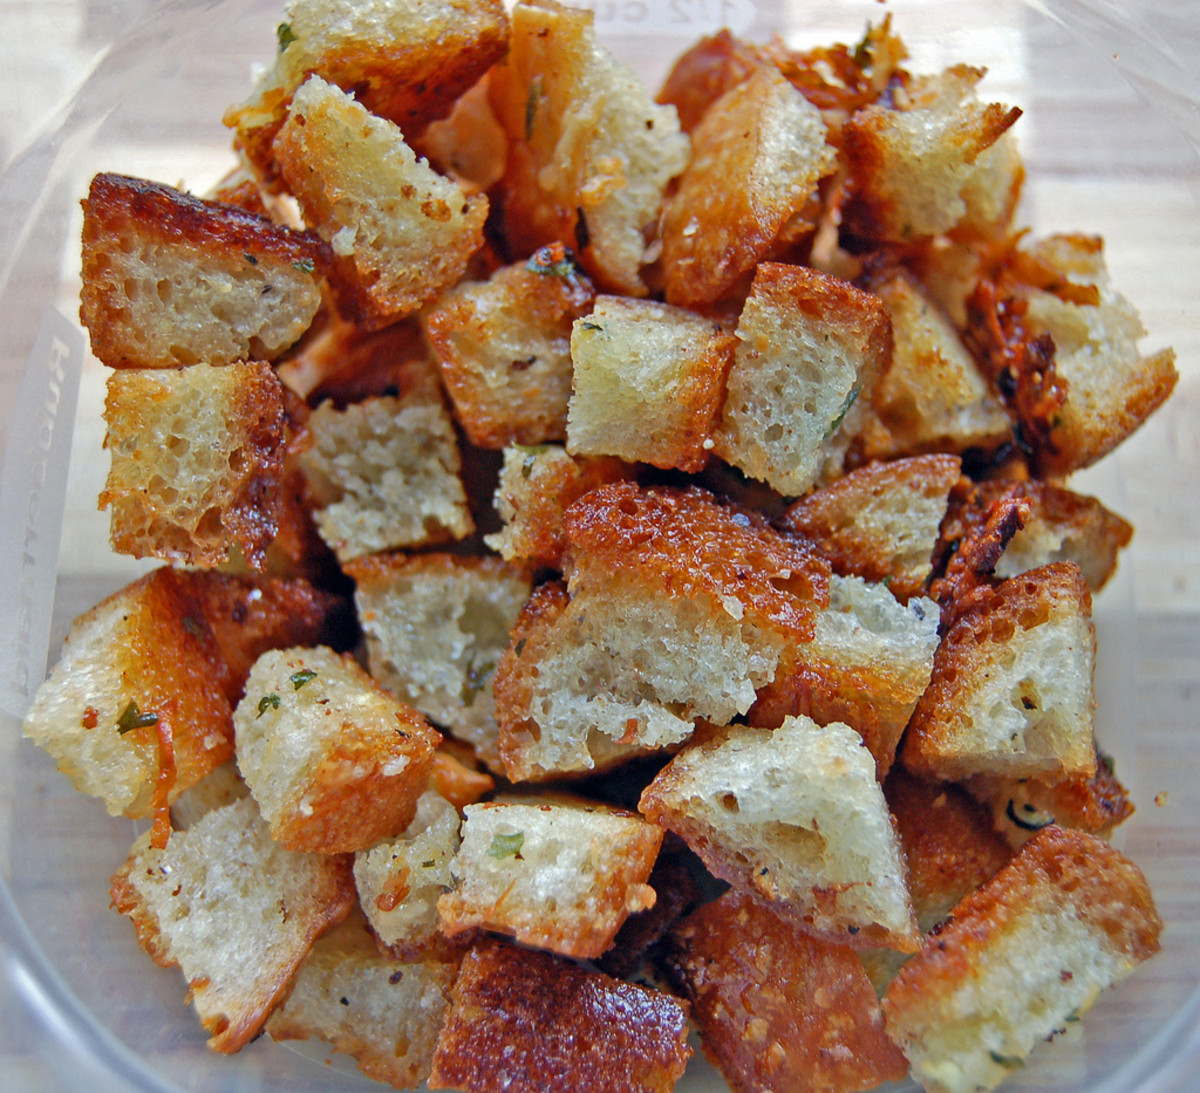 Hot Dog Bun croutons are delicious!